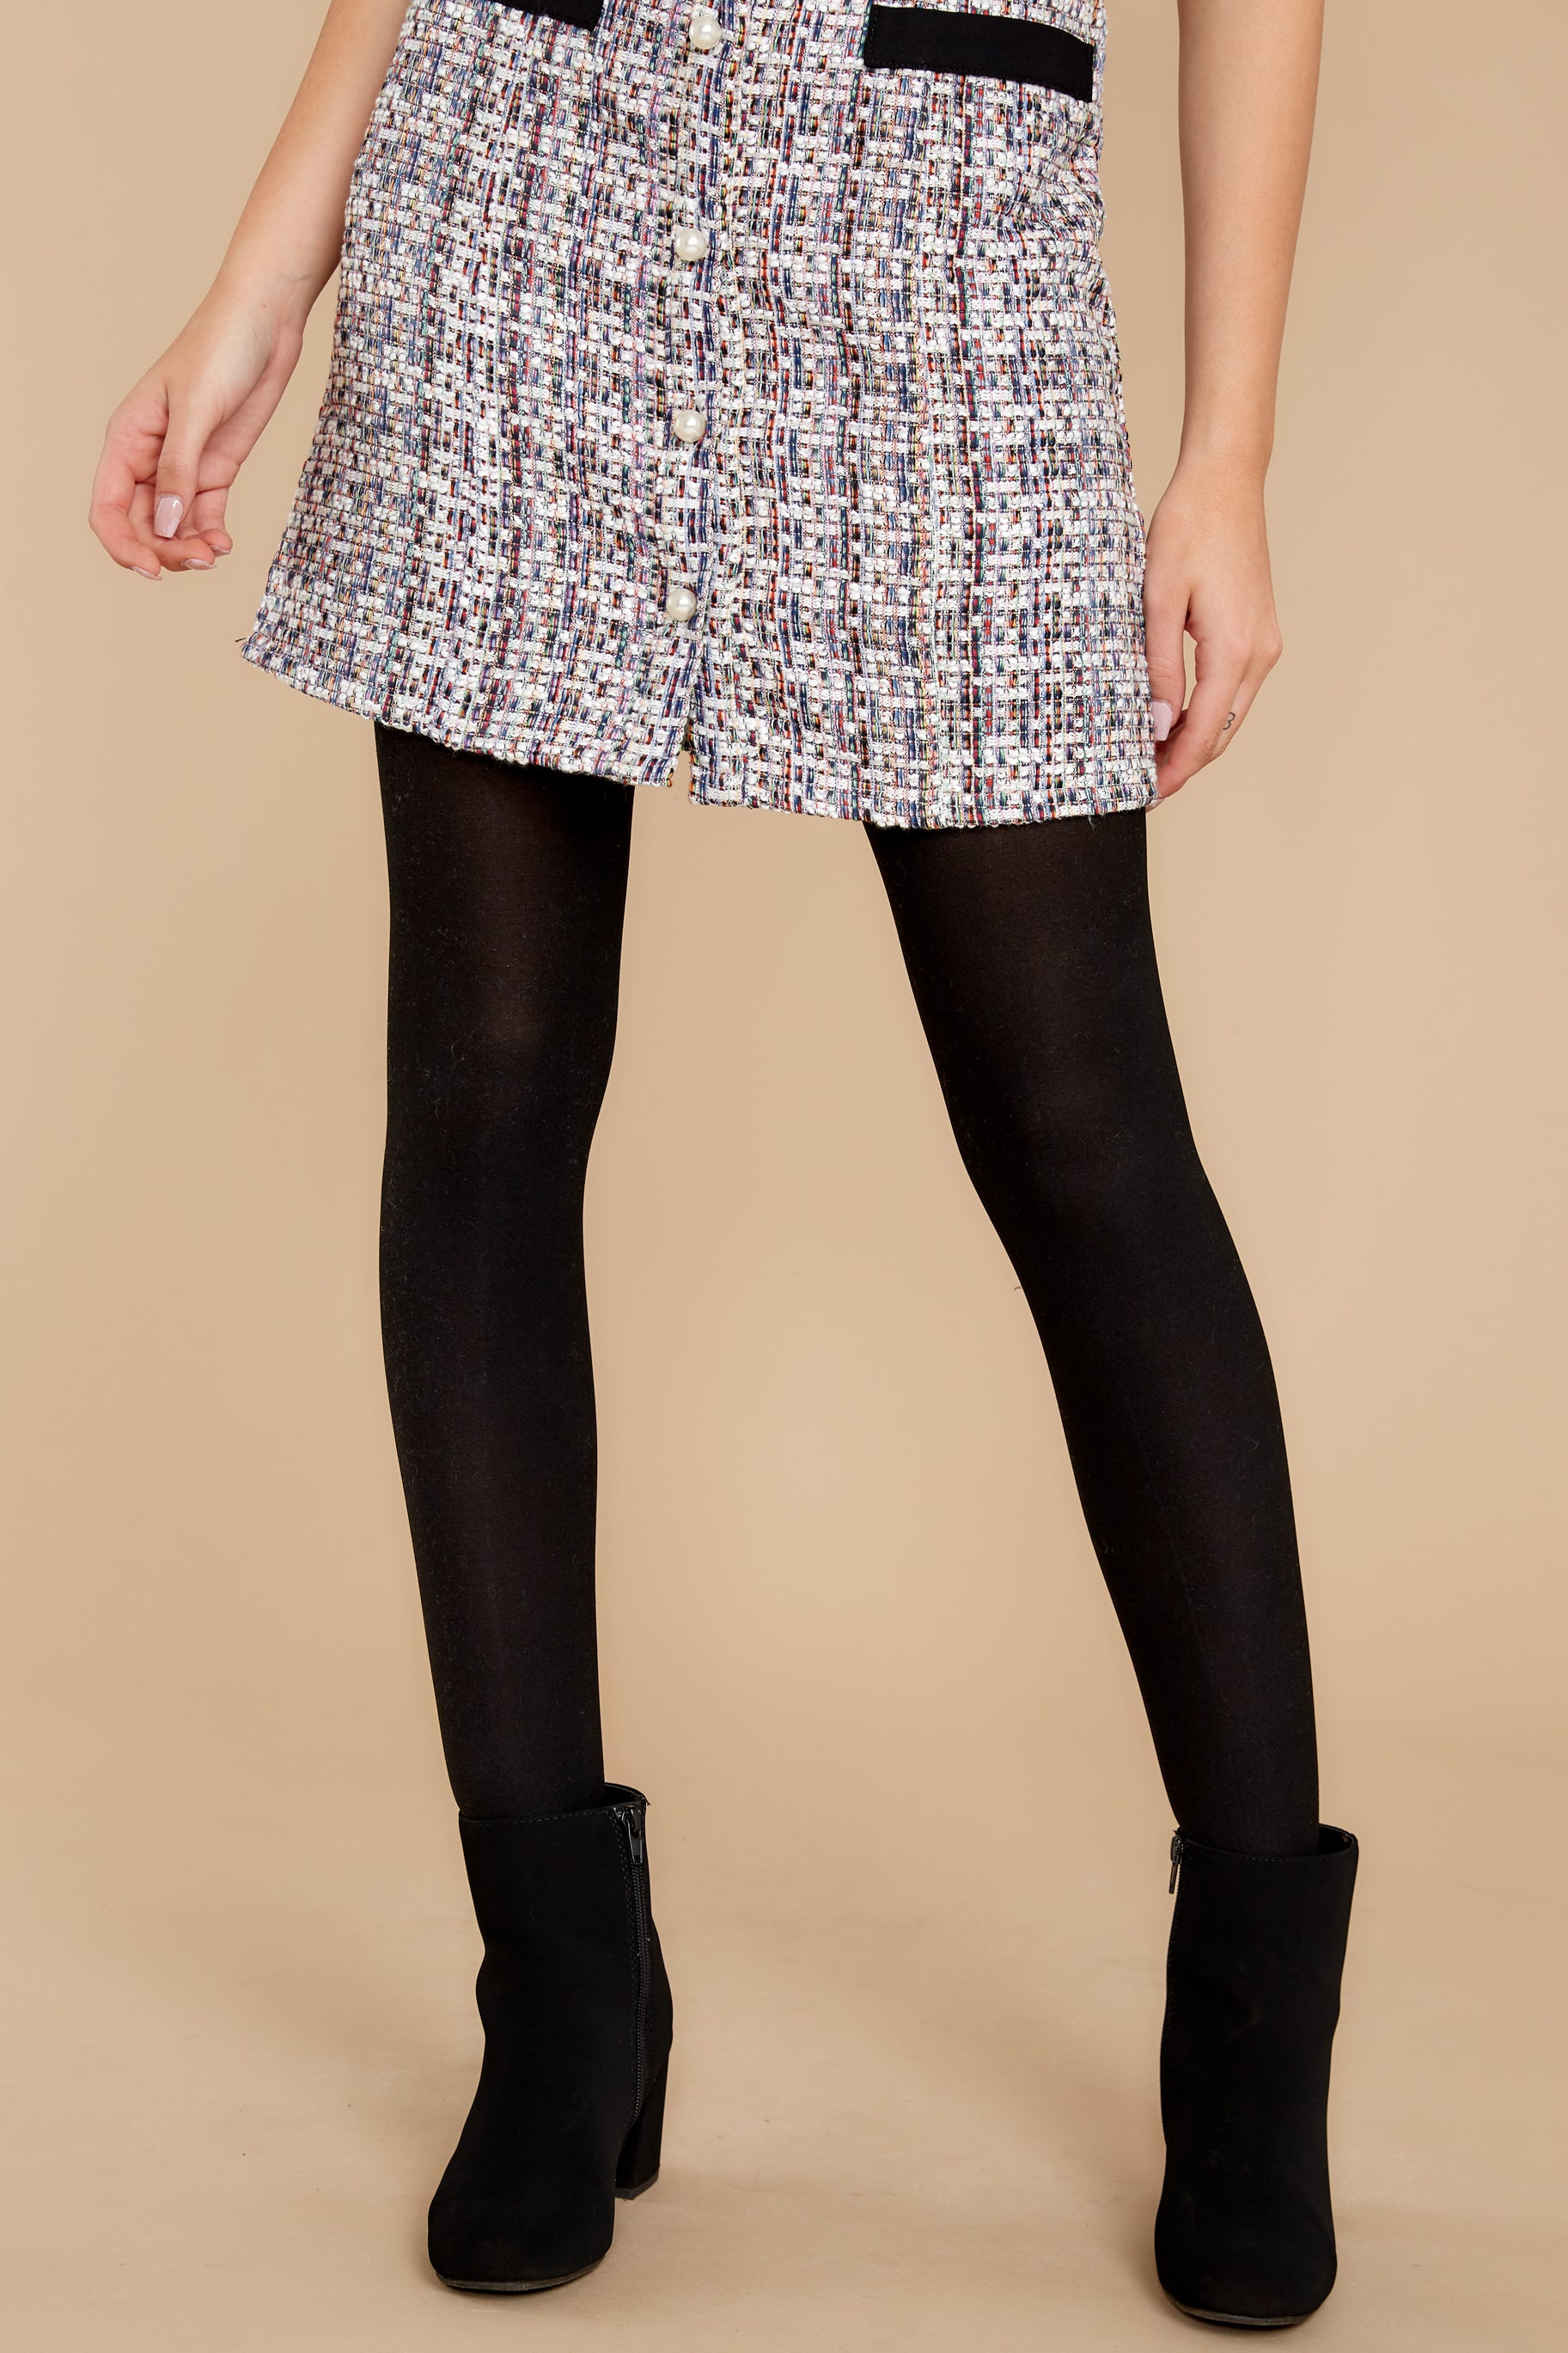 5 Spanx Black And Charcoal Reversible Mid Thigh Shaping Tights at reddressboutique.com